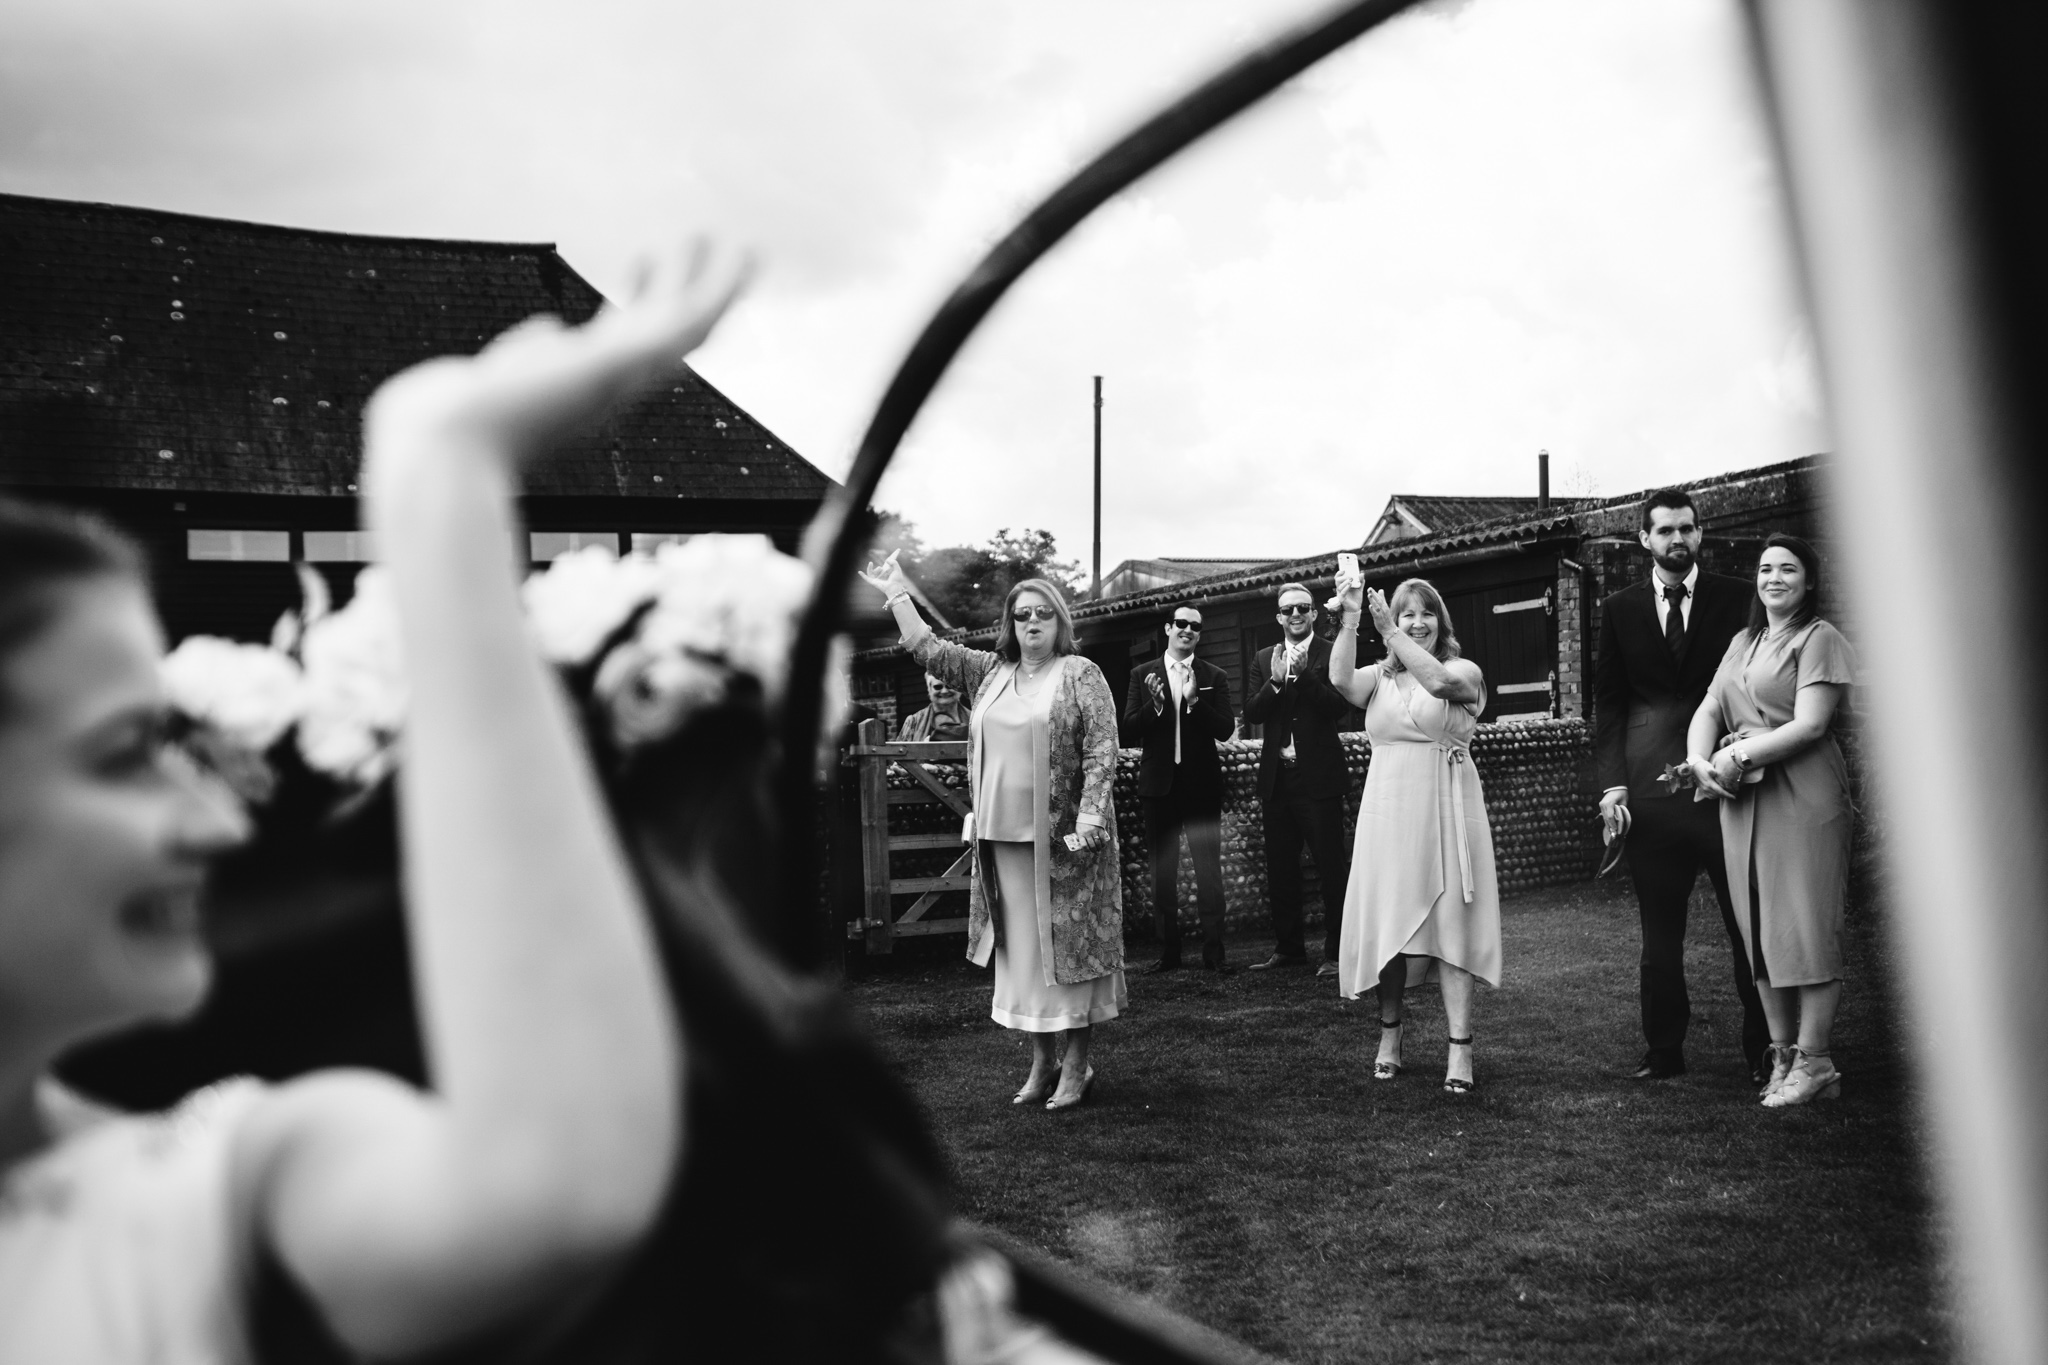 derbyshire-wedding-photographer-october-november-8.jpg